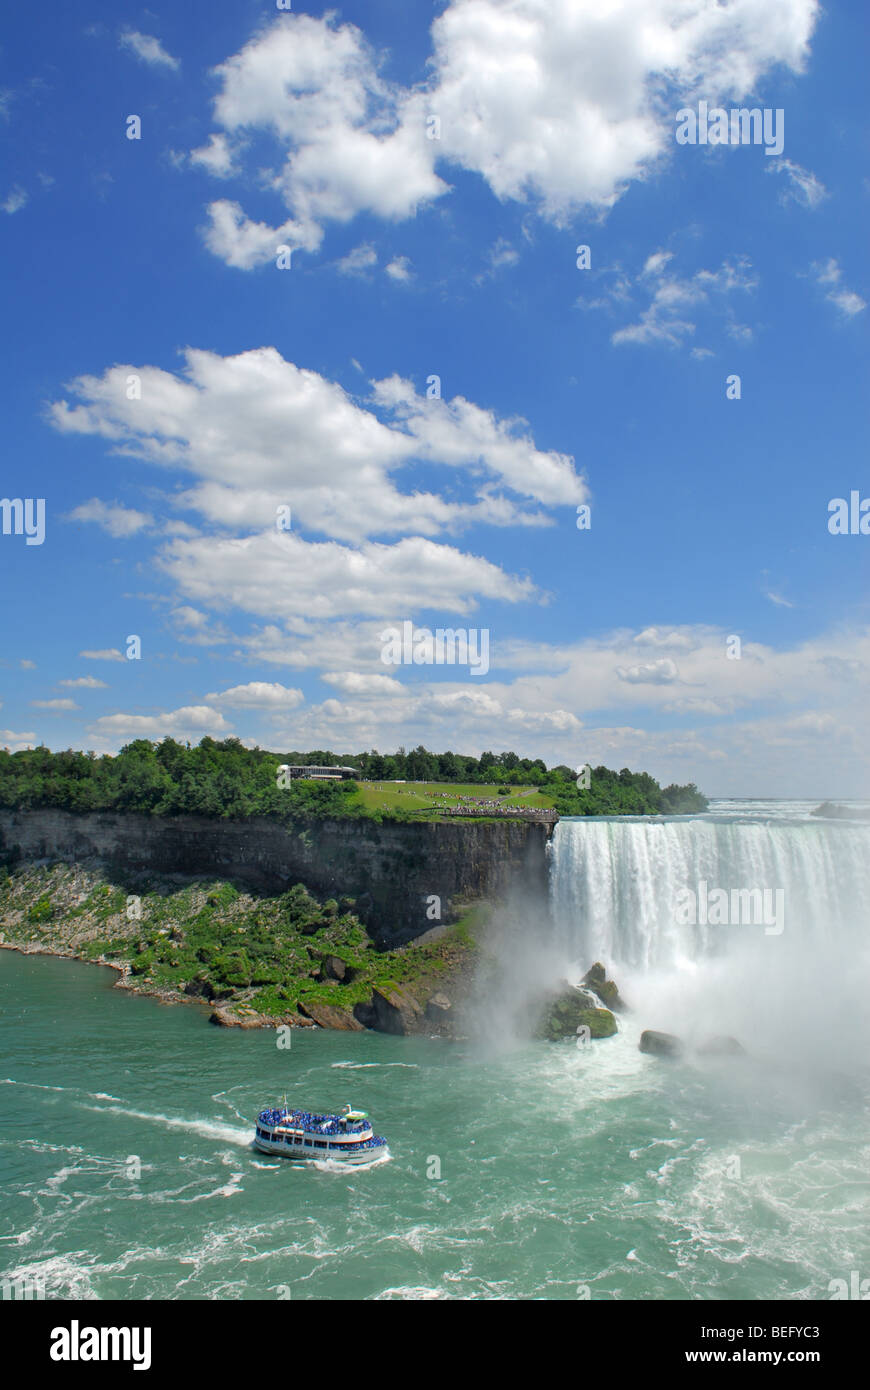 Boat tour coming very close to Niagara Falls - Stock Image